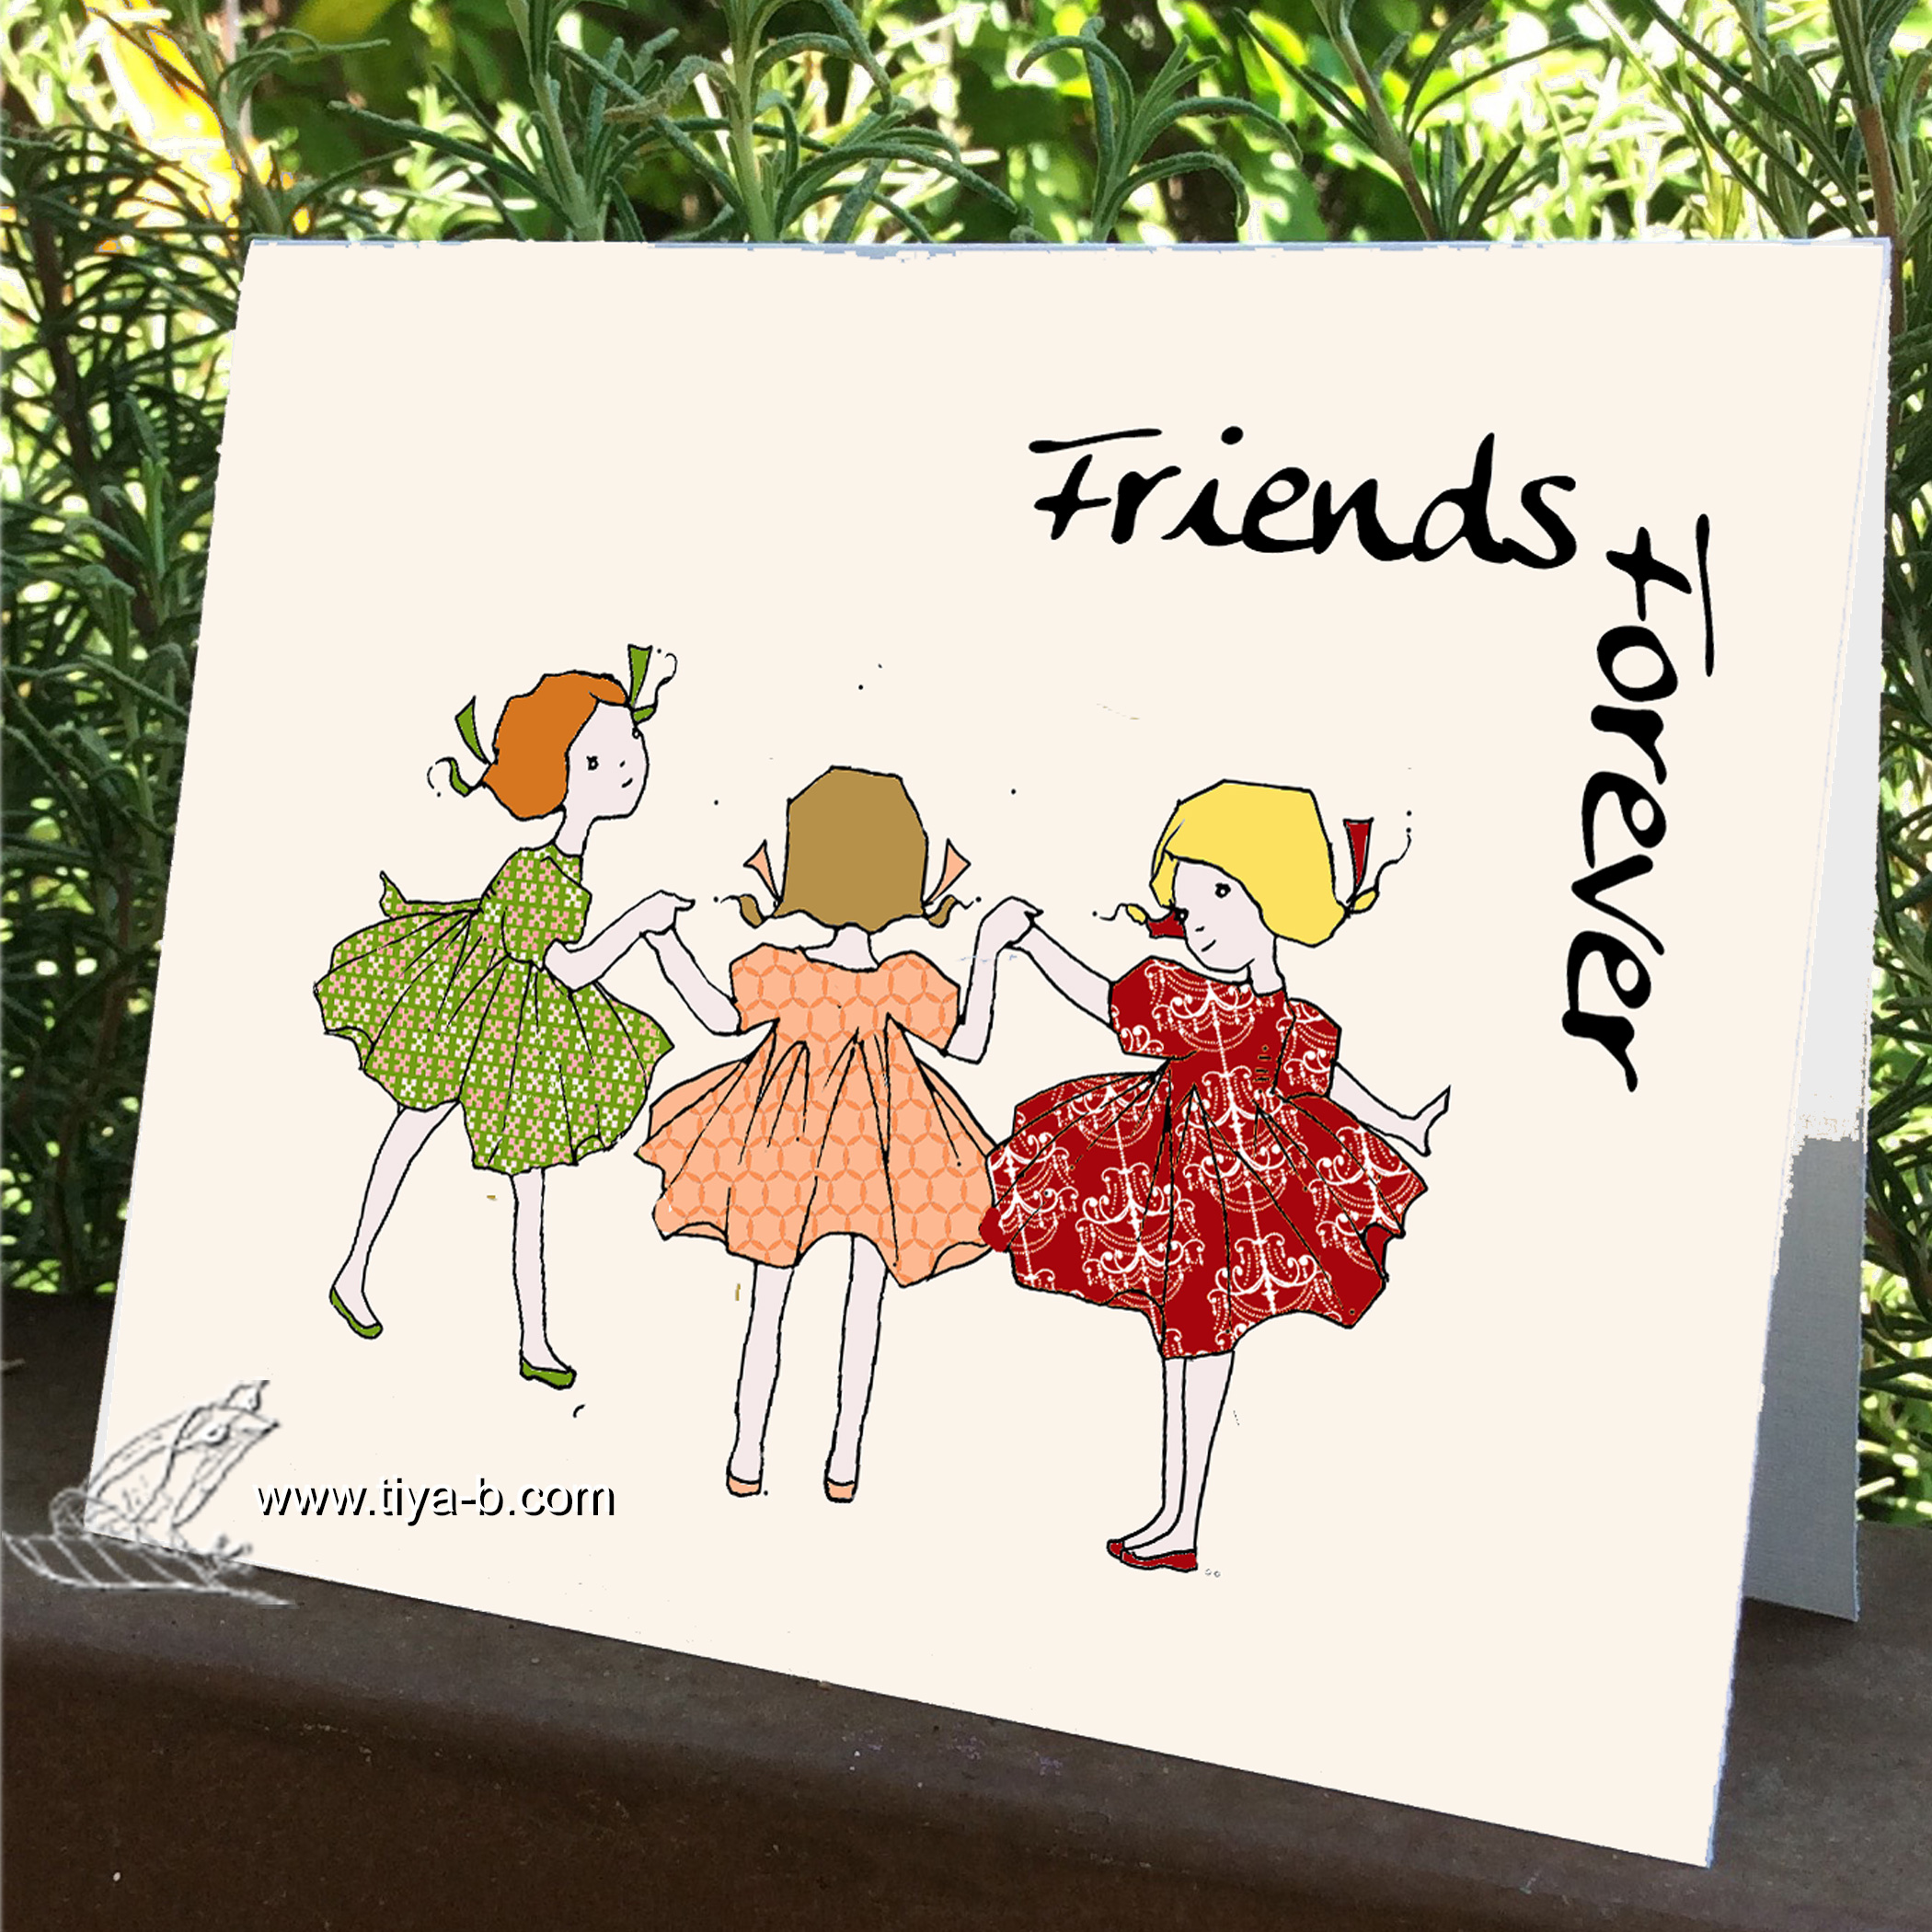 3-frends-in-dresses